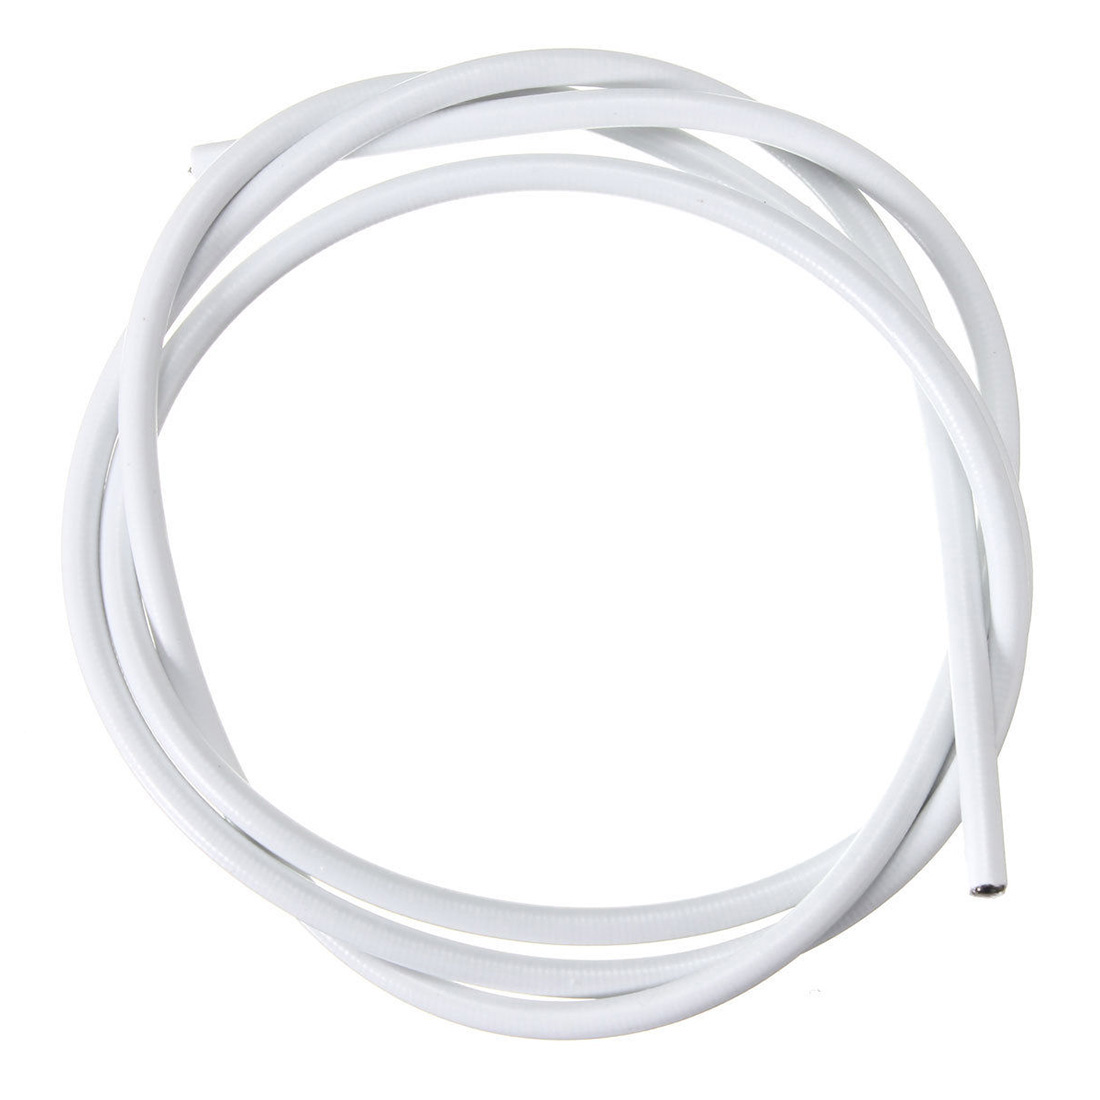 Curtain spring wire - Best 1m Window Net Curtain Wire Spring Cord Cable Kit 2 Pair Hooks Eyes